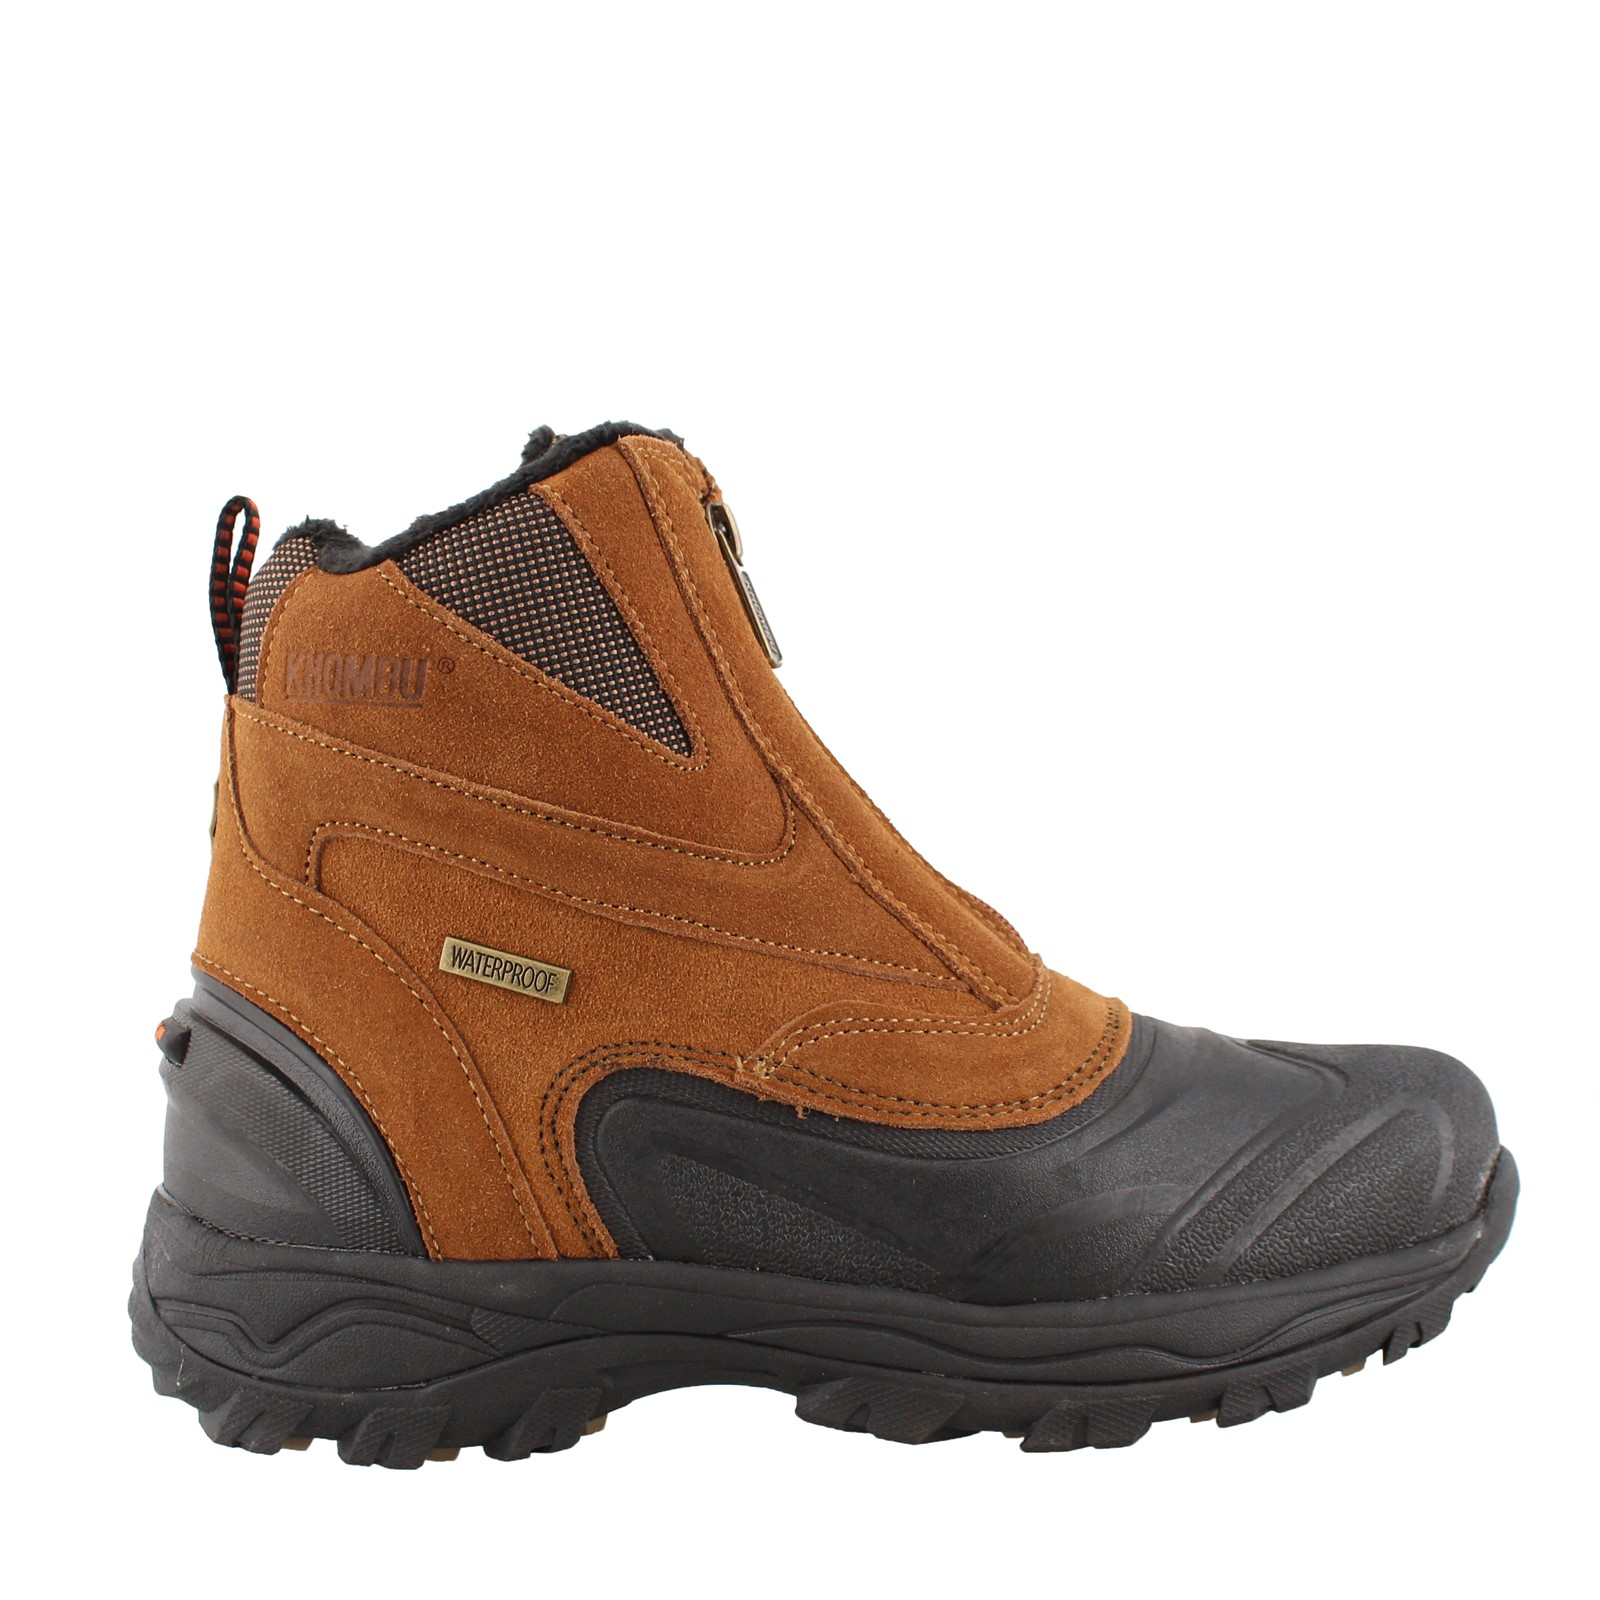 Men's Khombu, Otis Boots